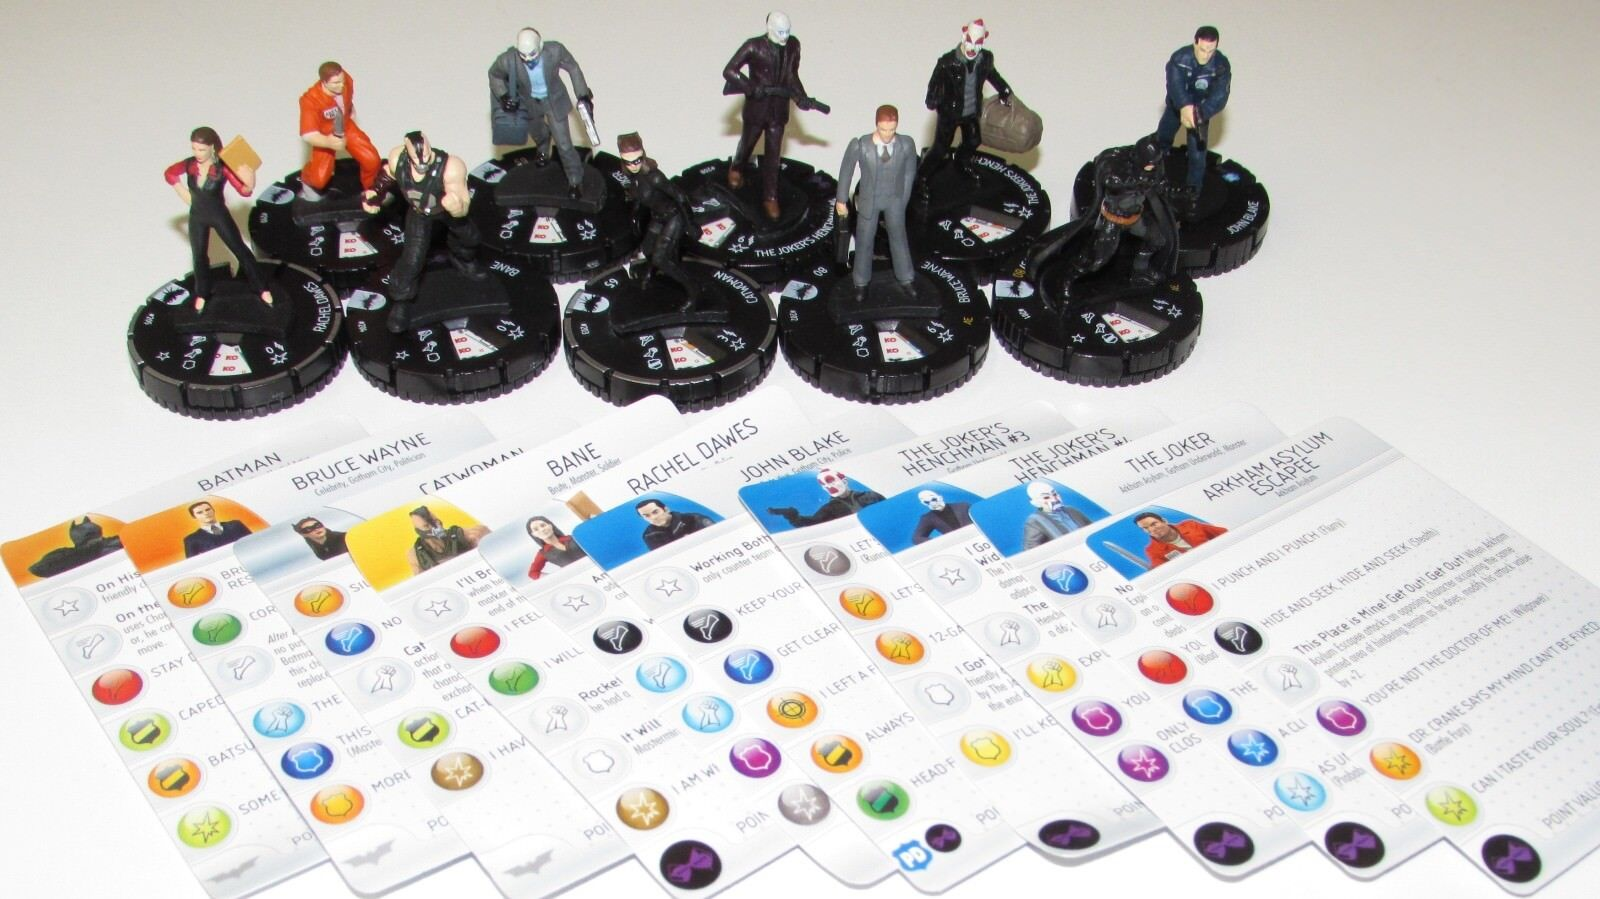 The Dark Knight Rises Set Complet 201-210 Exclusif Dc Heroclix